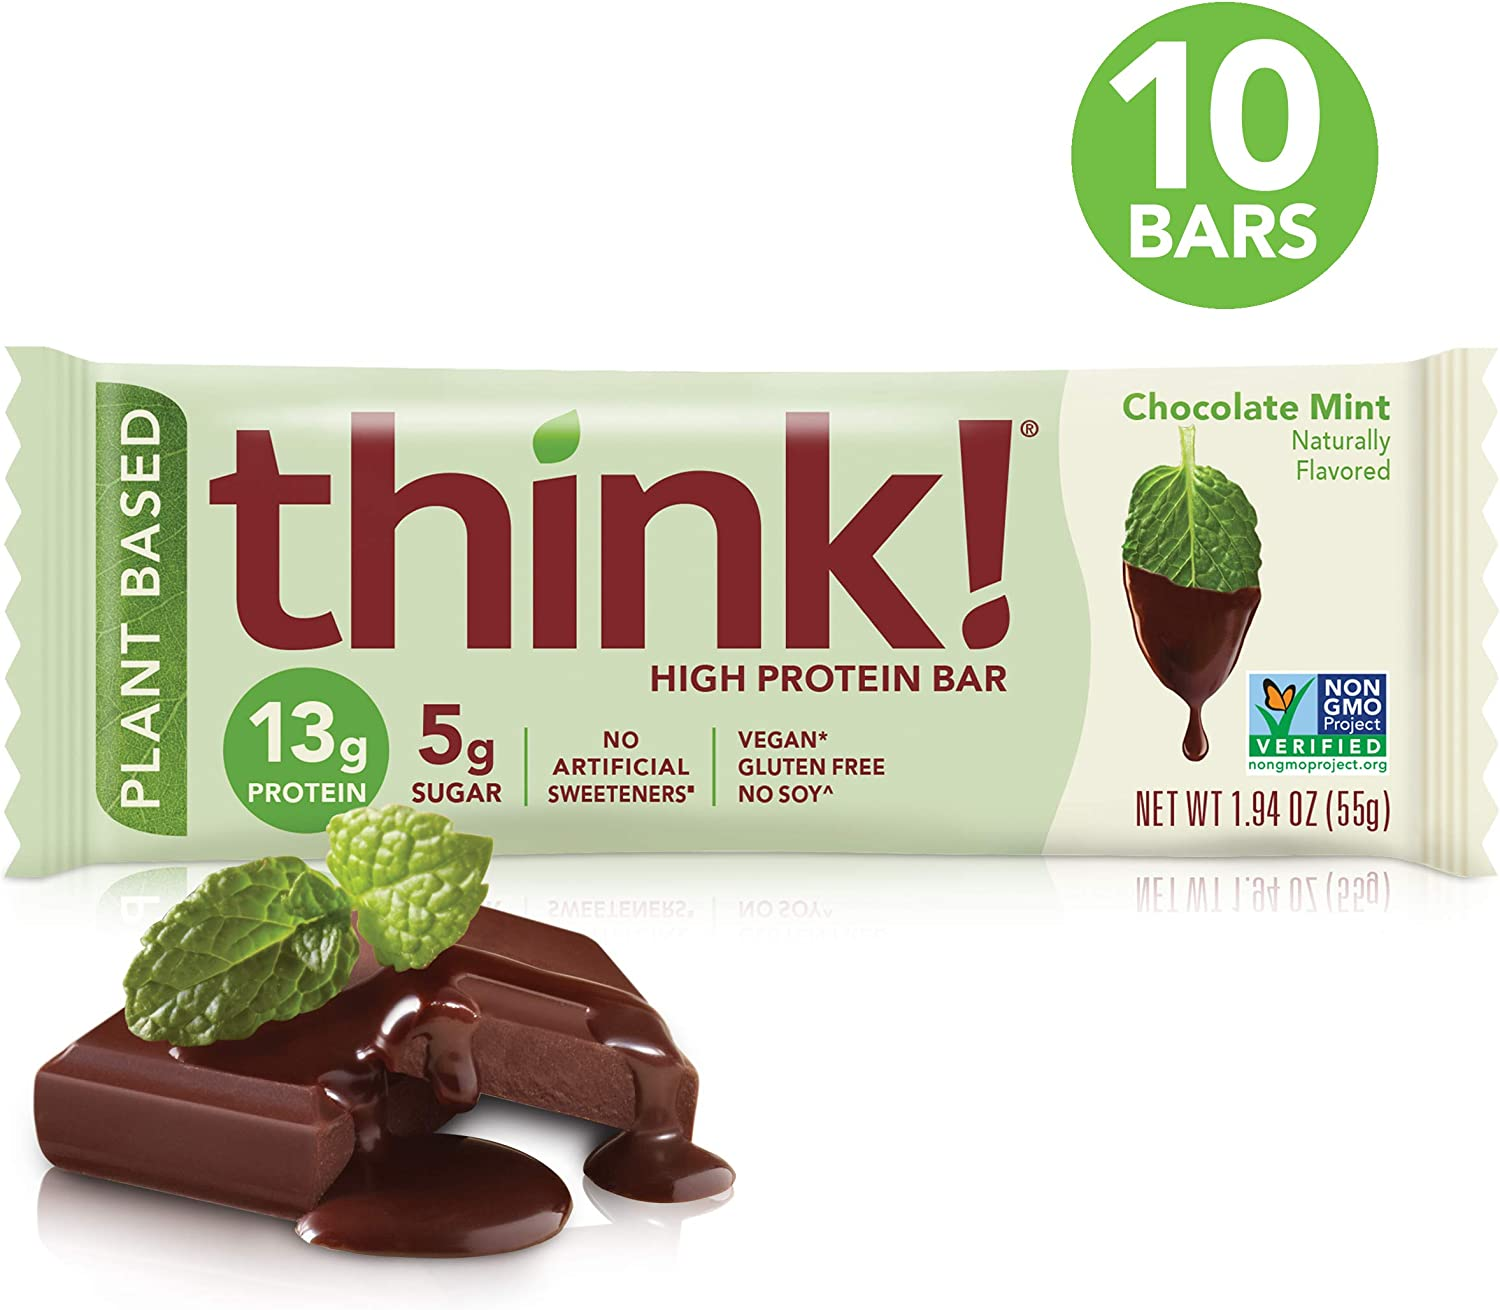 think! High Protein Bars